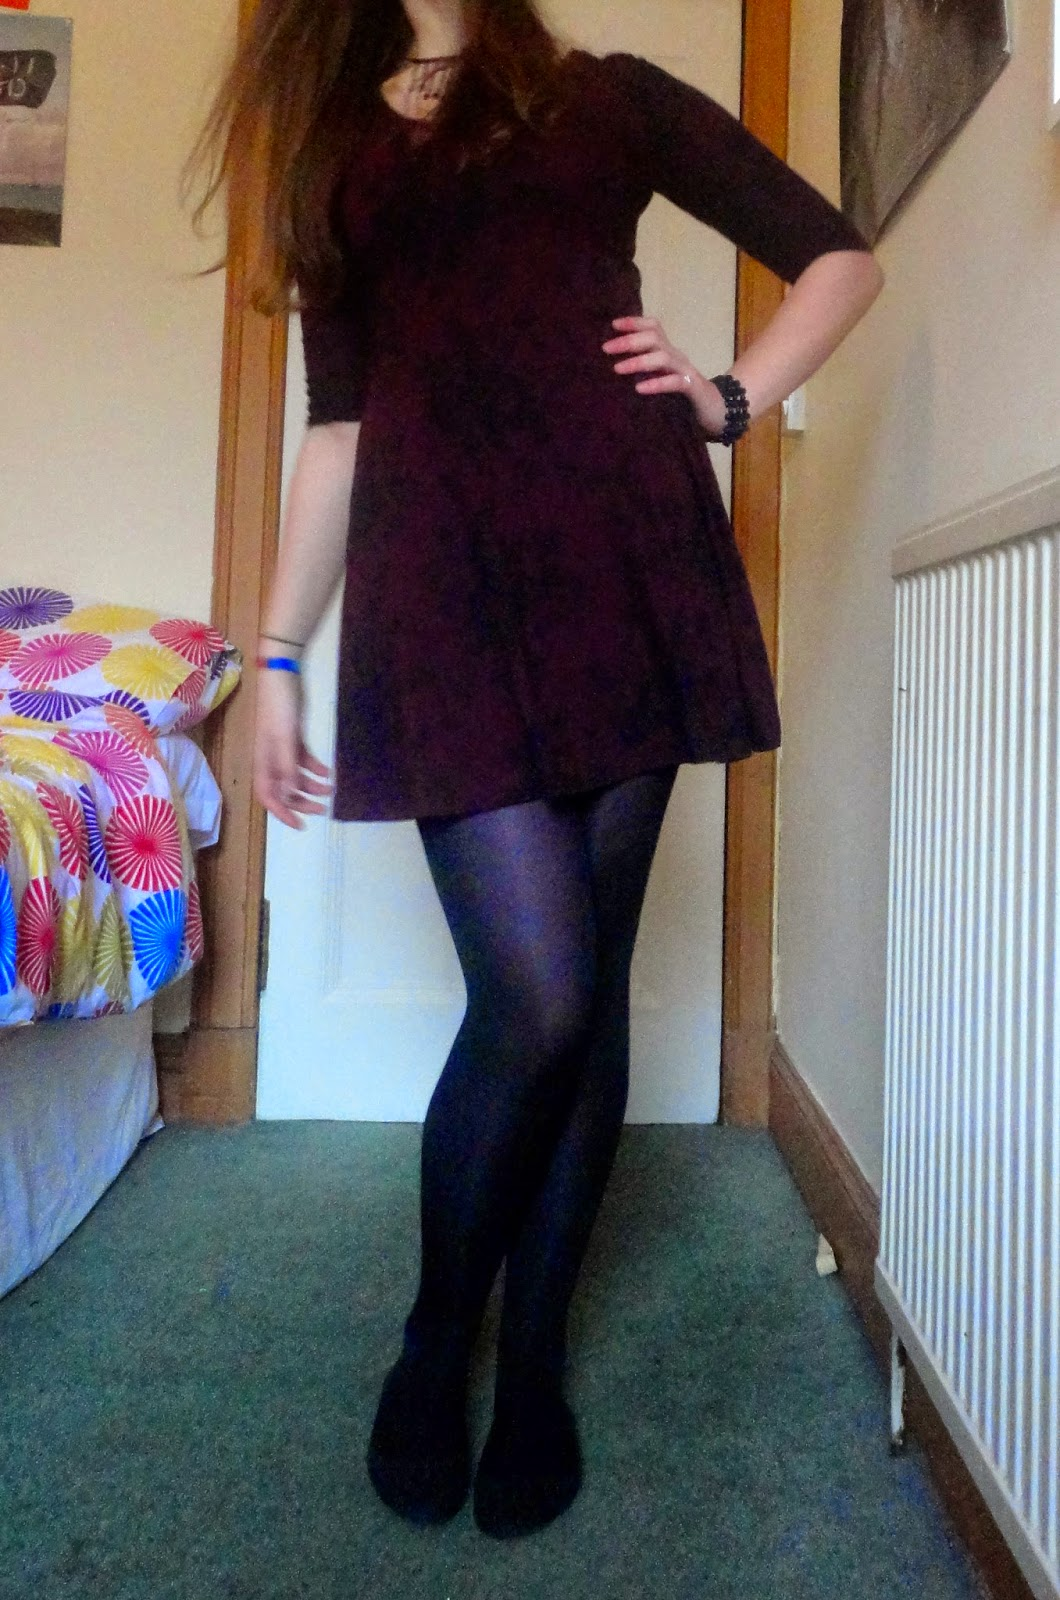 Wildflowers | outfit of short black and purple floral dress, with black flat shoes, tights and jewellery